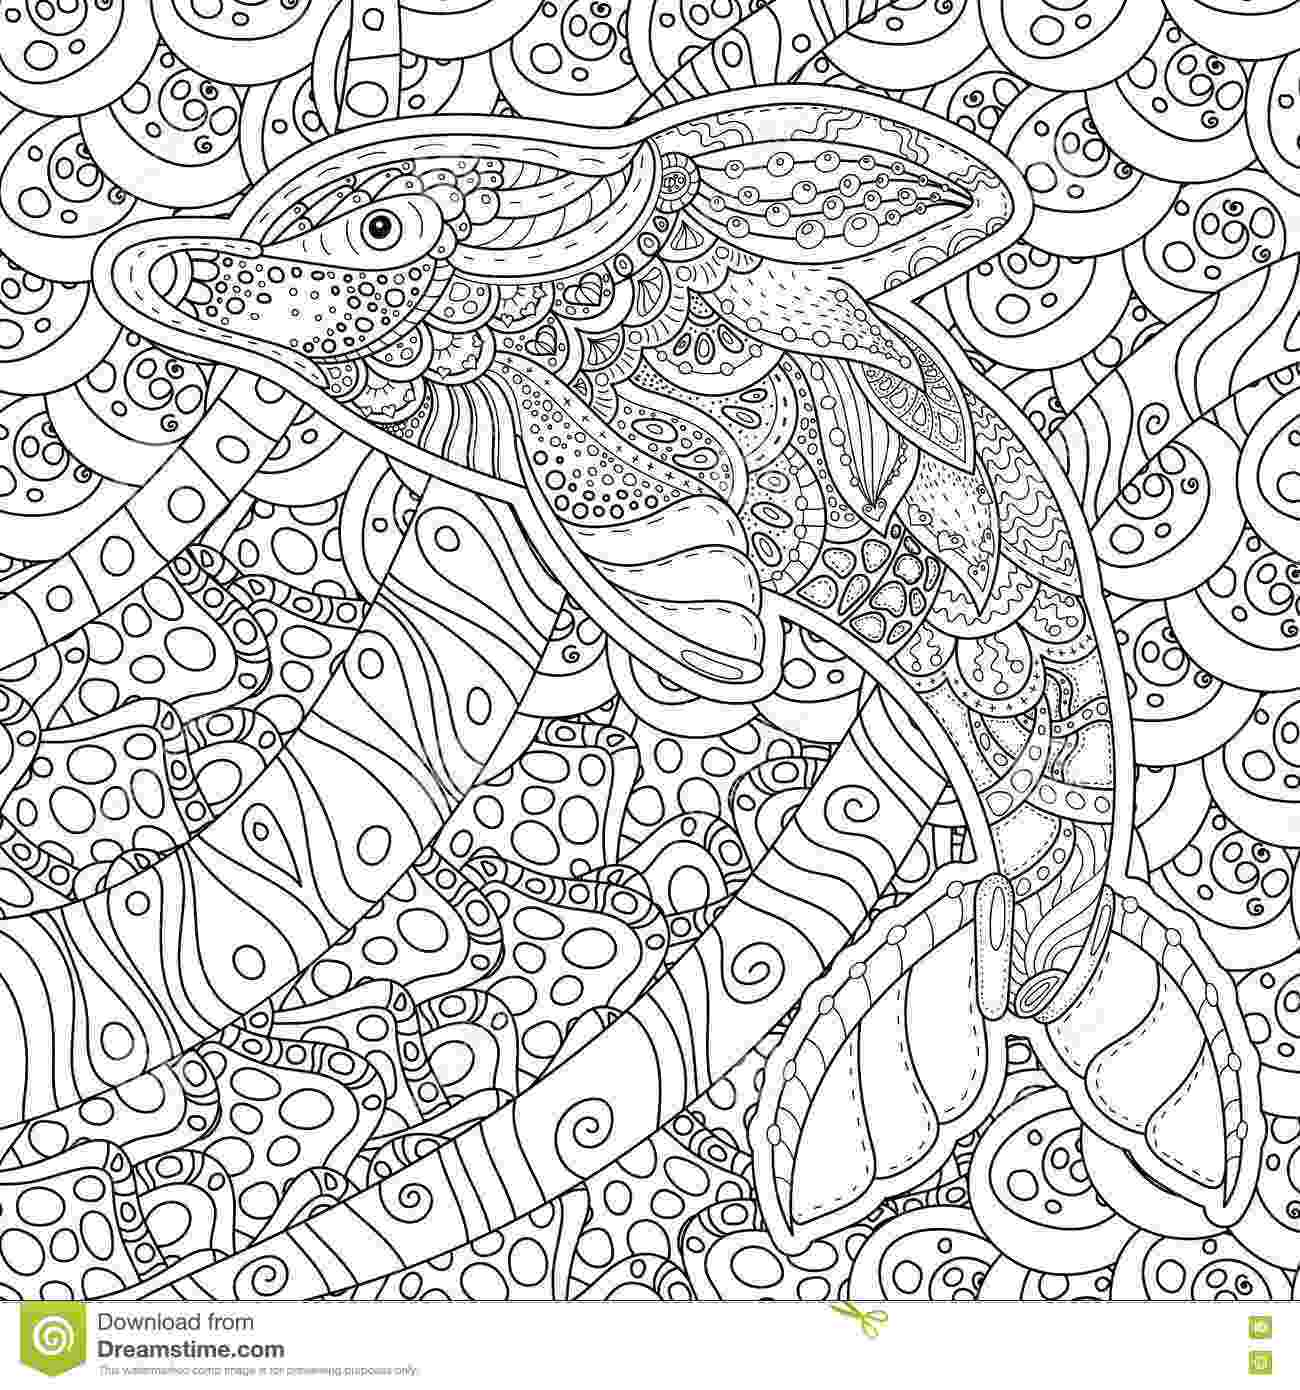 anti stress coloring book animals zentangle stylized dolphin adult anti stress coloring anti stress animals coloring book